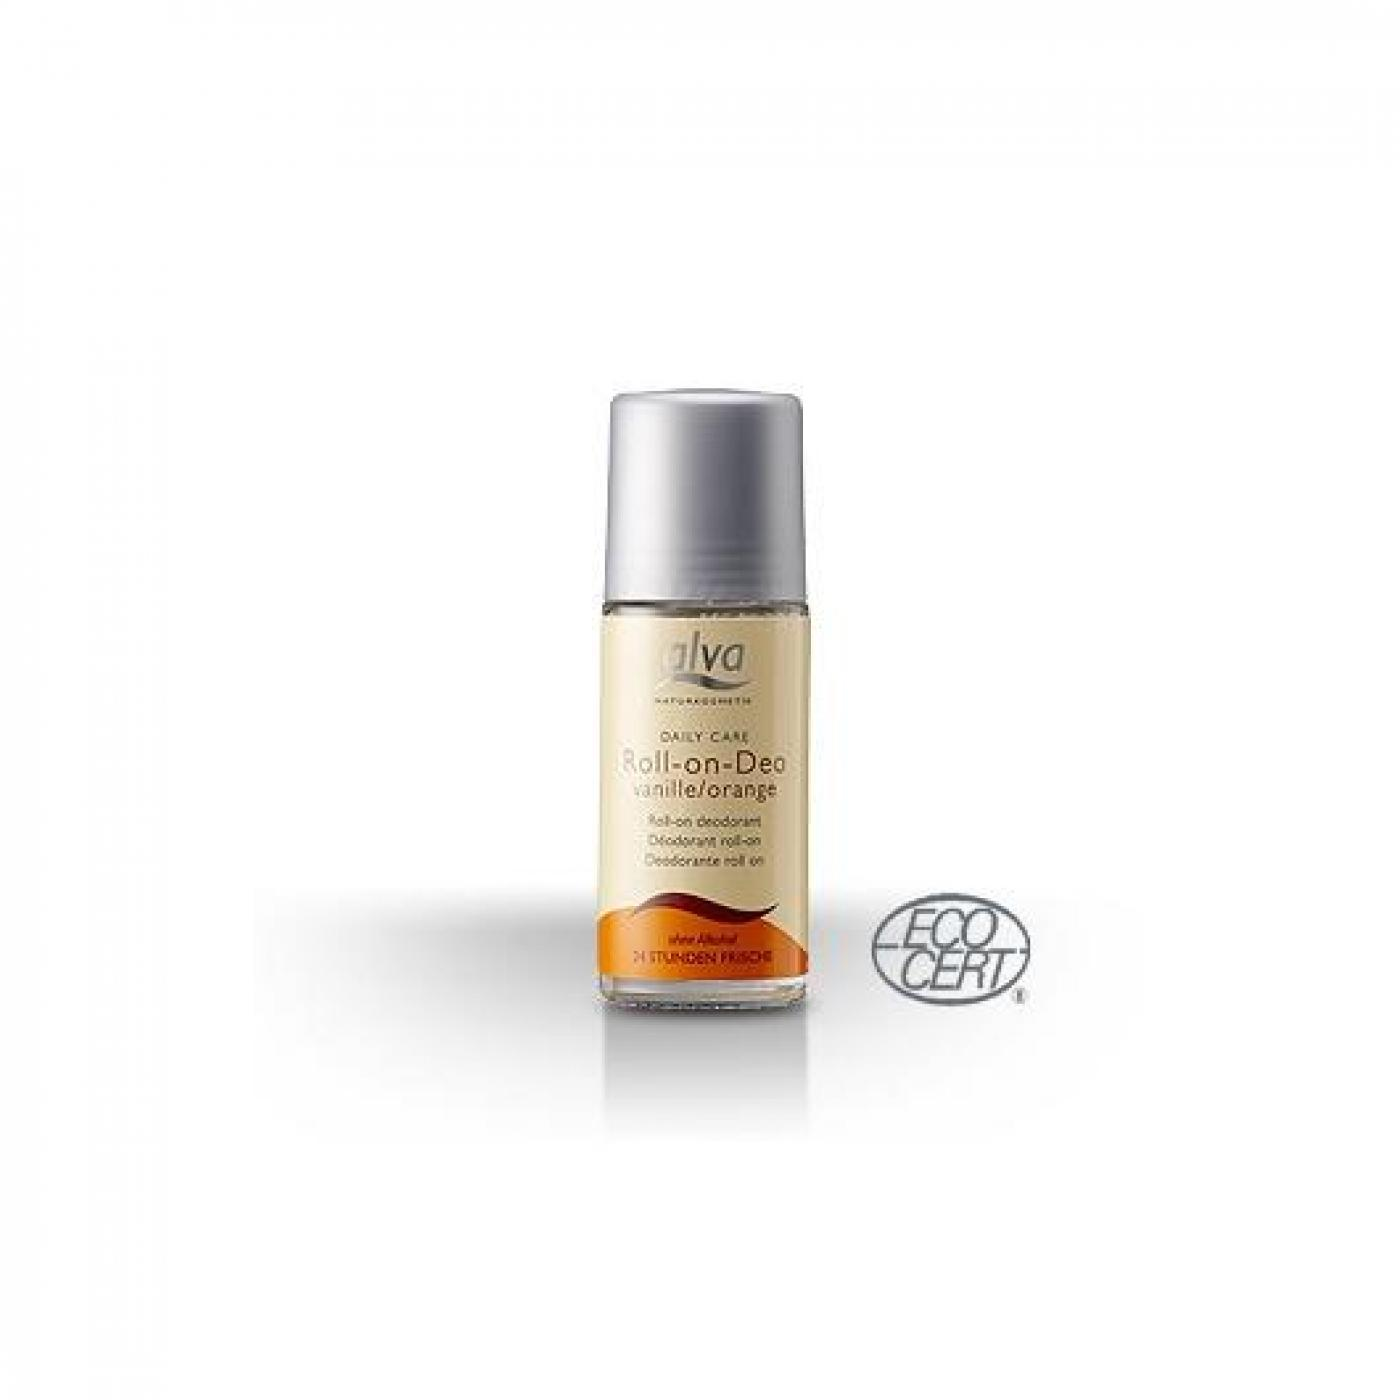 Desodorante Roll On de vainilla y naranja Alva, 50ml